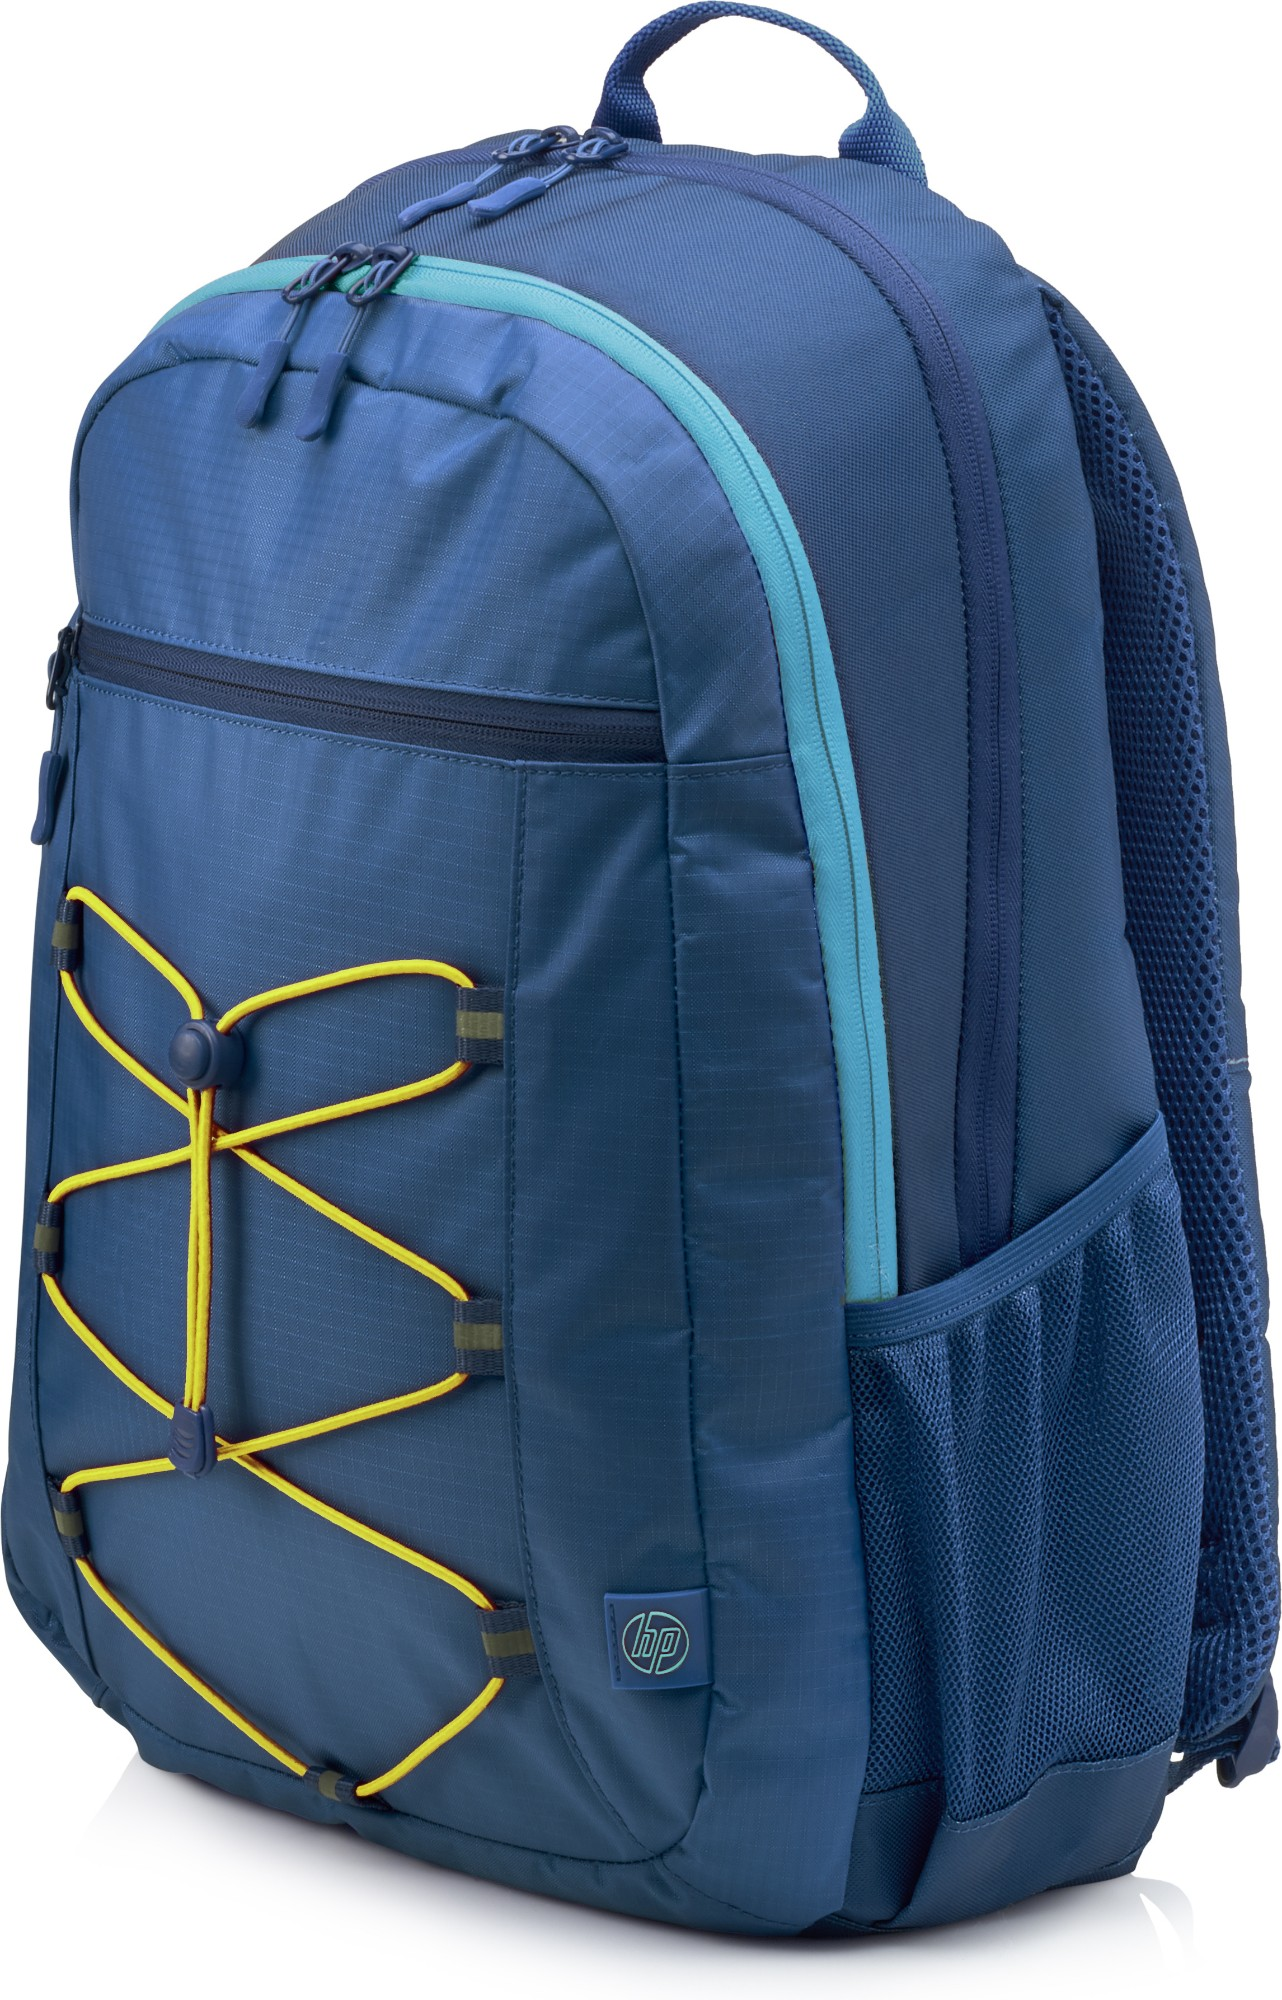 HP ACTIVE (NAVY BLUE/YELLOW) BACKPACK FABRIC BLUE,YELLOW